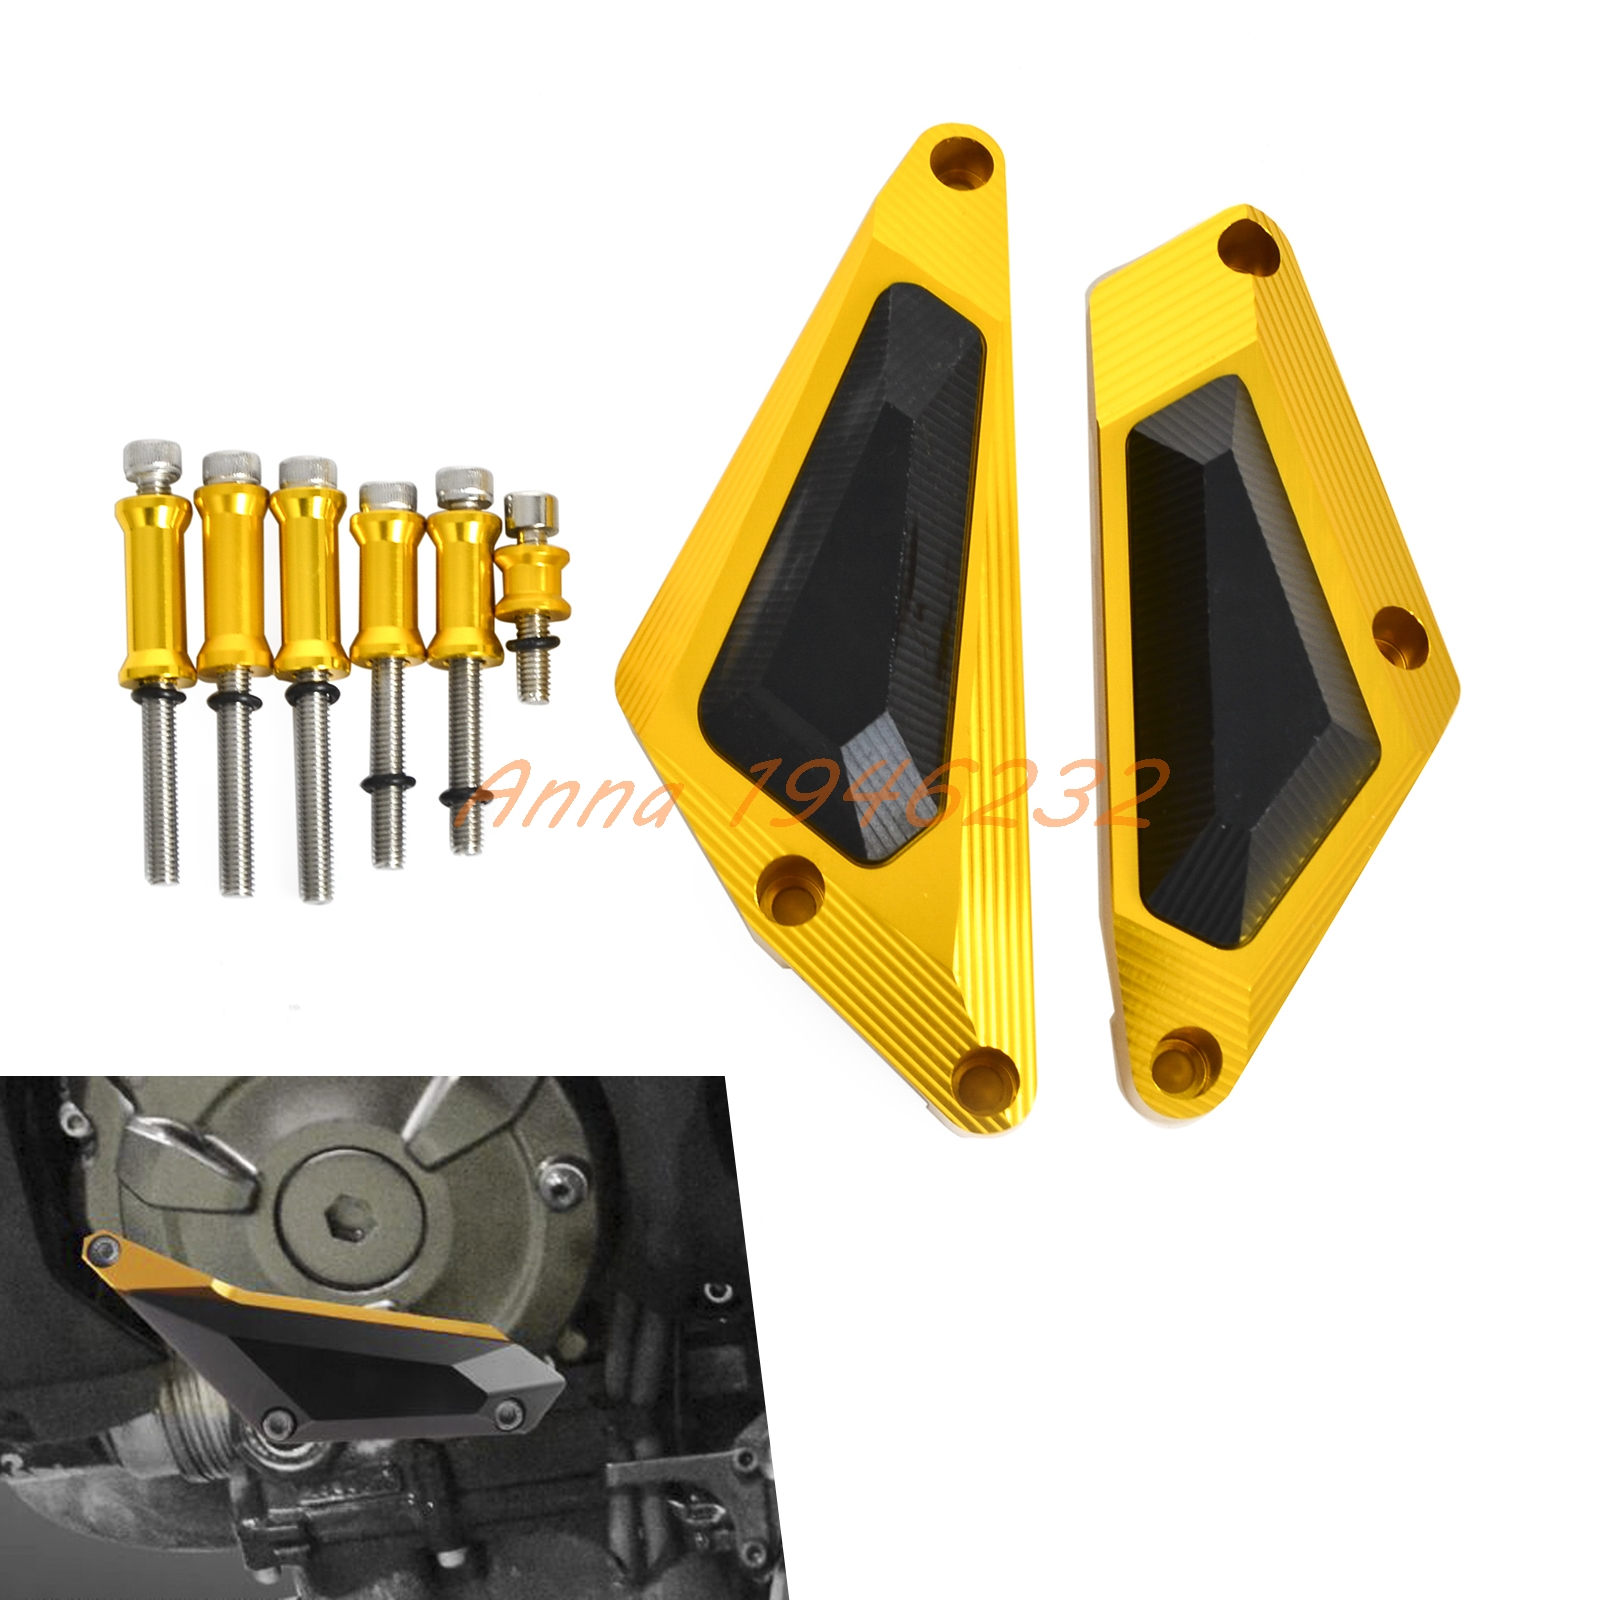 Motorcycle Engine Slider Cover Crash Protector  For MT-07 MT07 MOTO CAGE TRACER 700 XSR700 2014-2016 Motocross Enduro Supermoto цена 2016